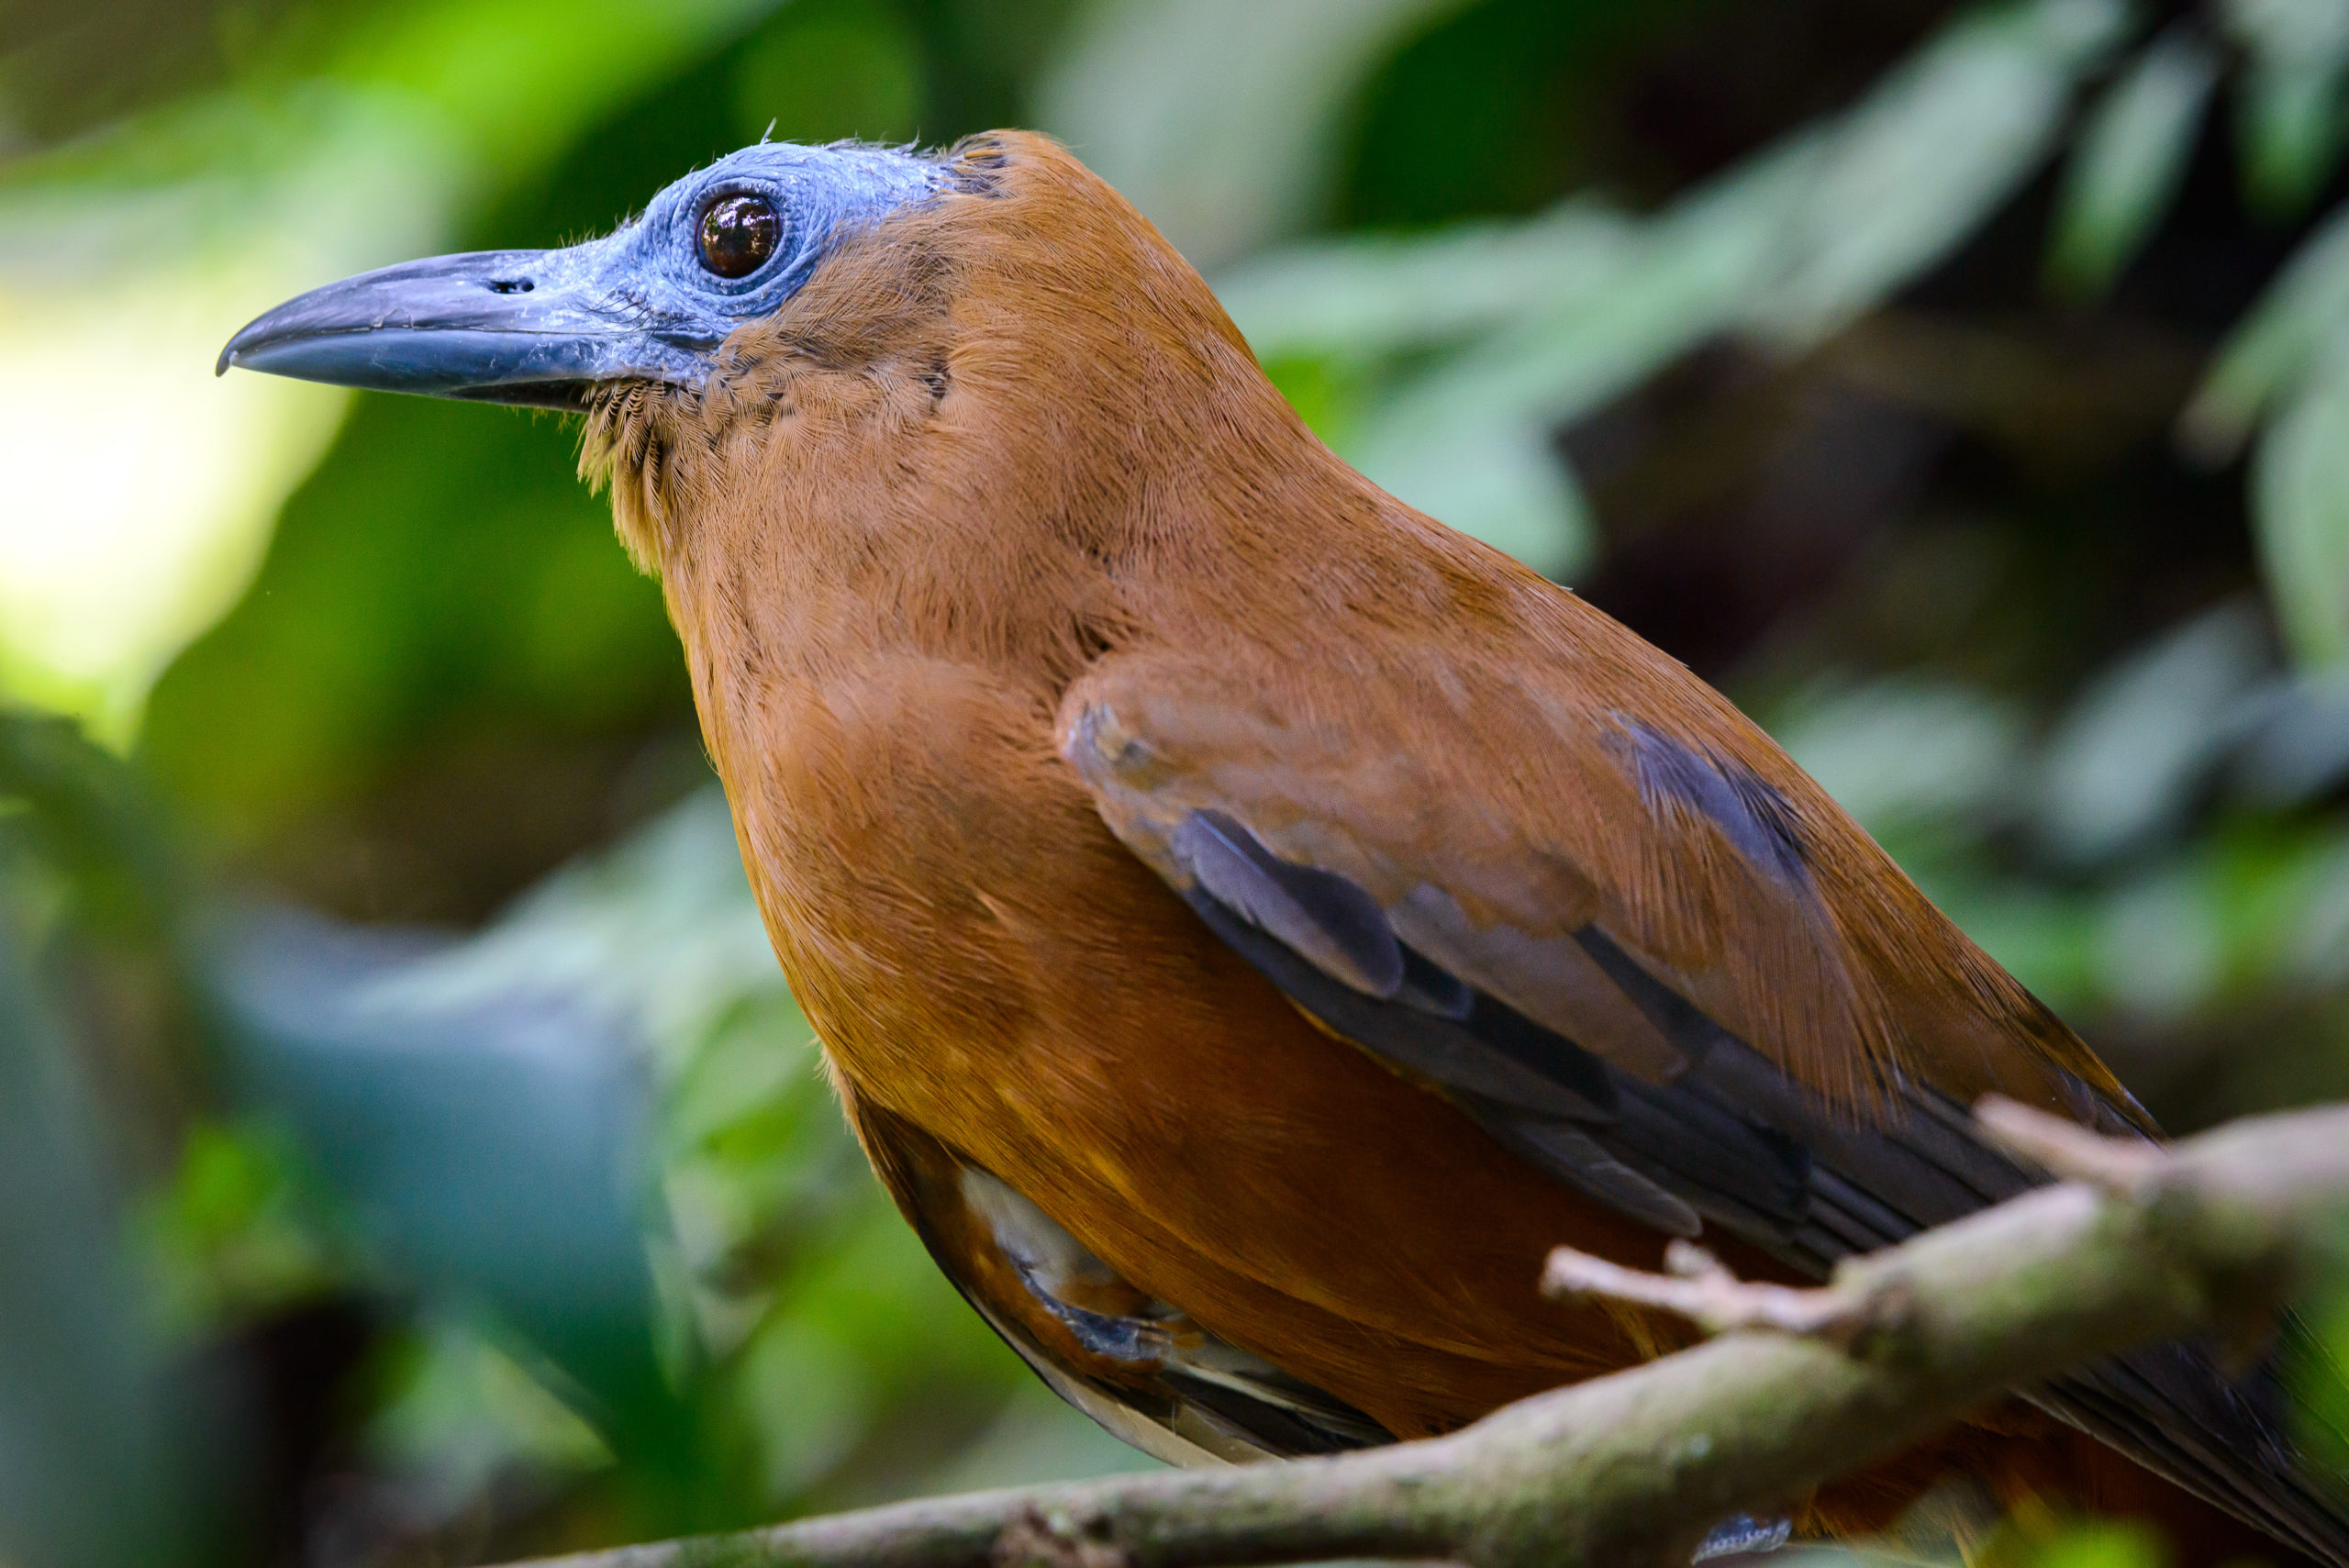 Guyana travel offers opportunities to see Capuchinbird and other species